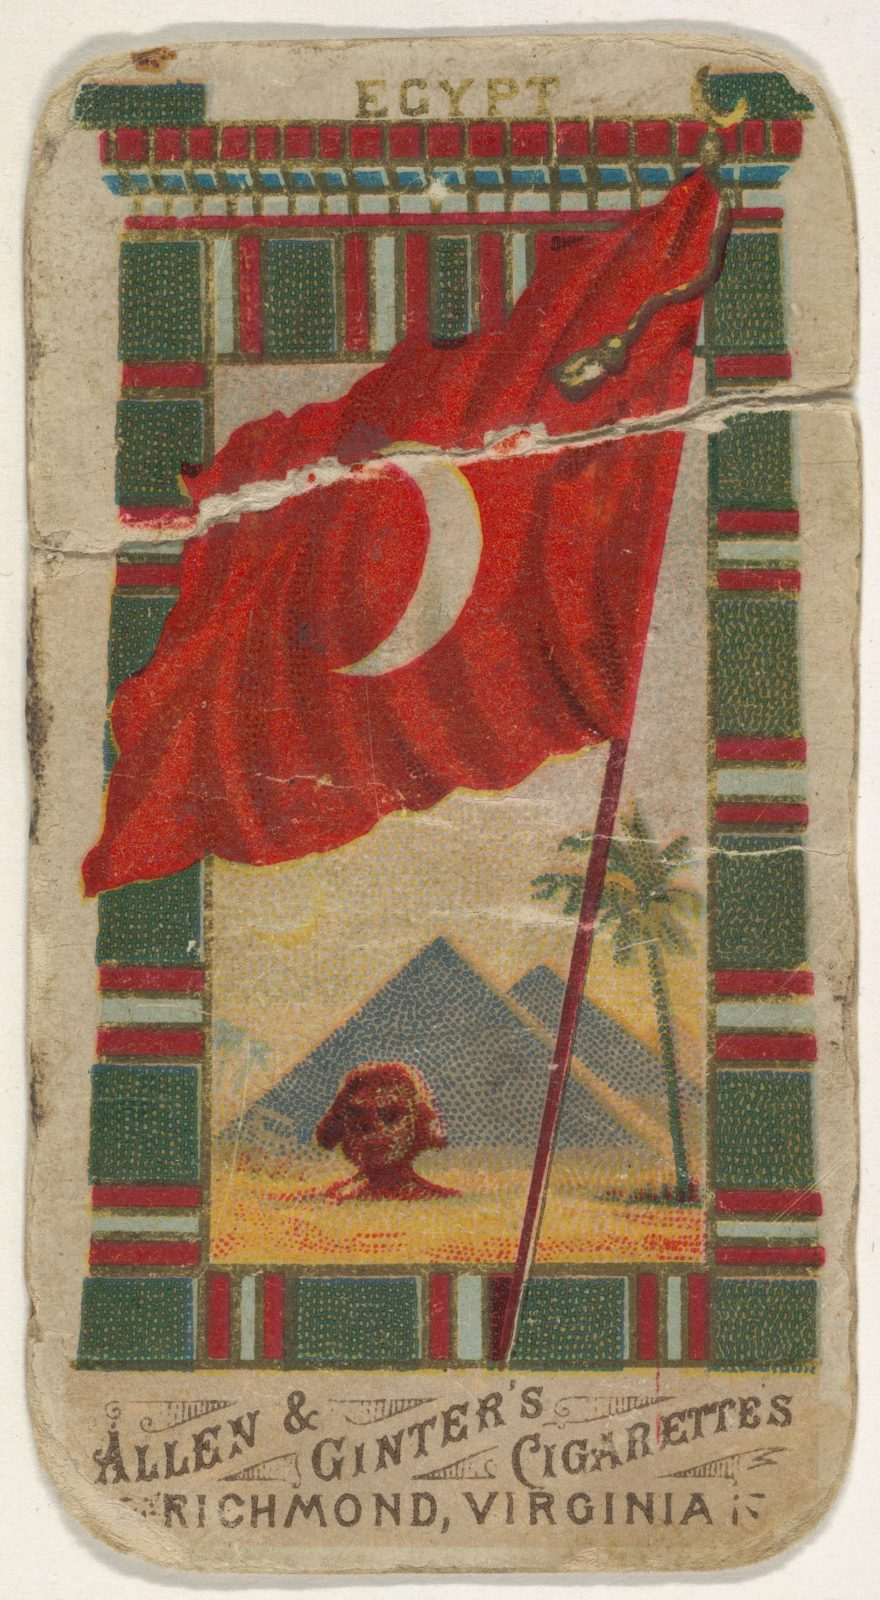 Egypt, from Flags of All Nations, Series 1 (N9) for Allen & Ginter Cigarettes Brands